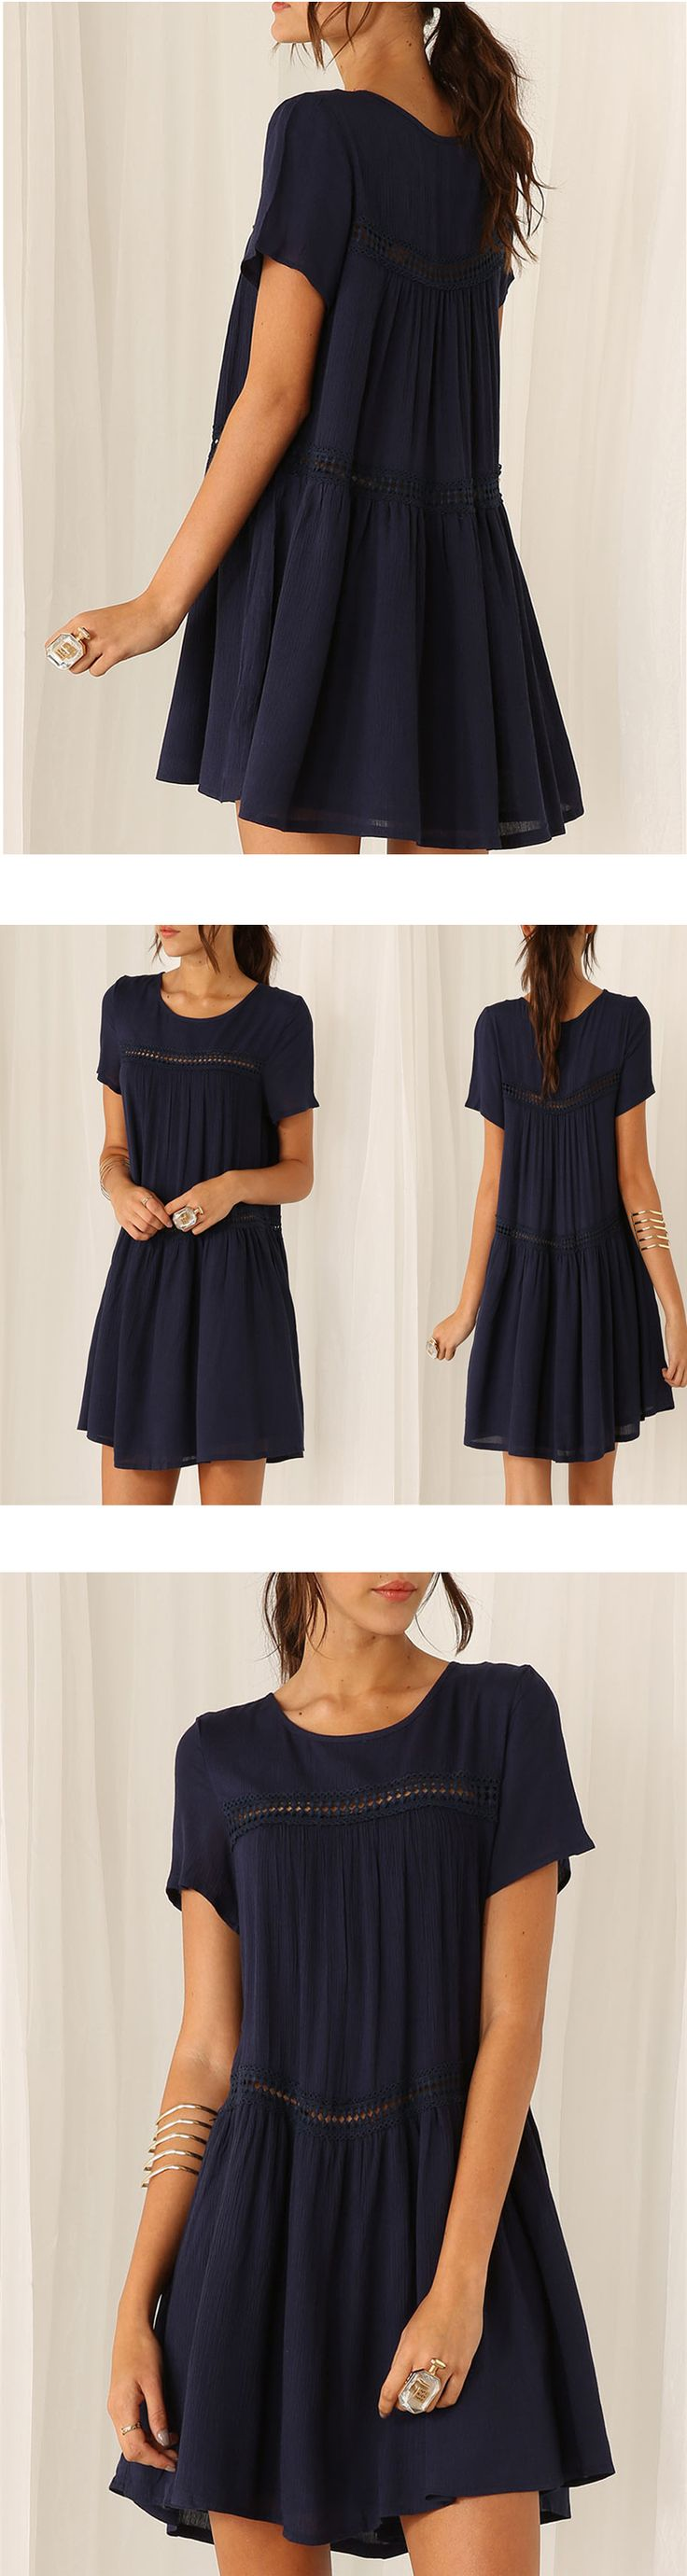 love love love the swing/shift dress! and Navy works for me! Short Sleeve Shift Dress